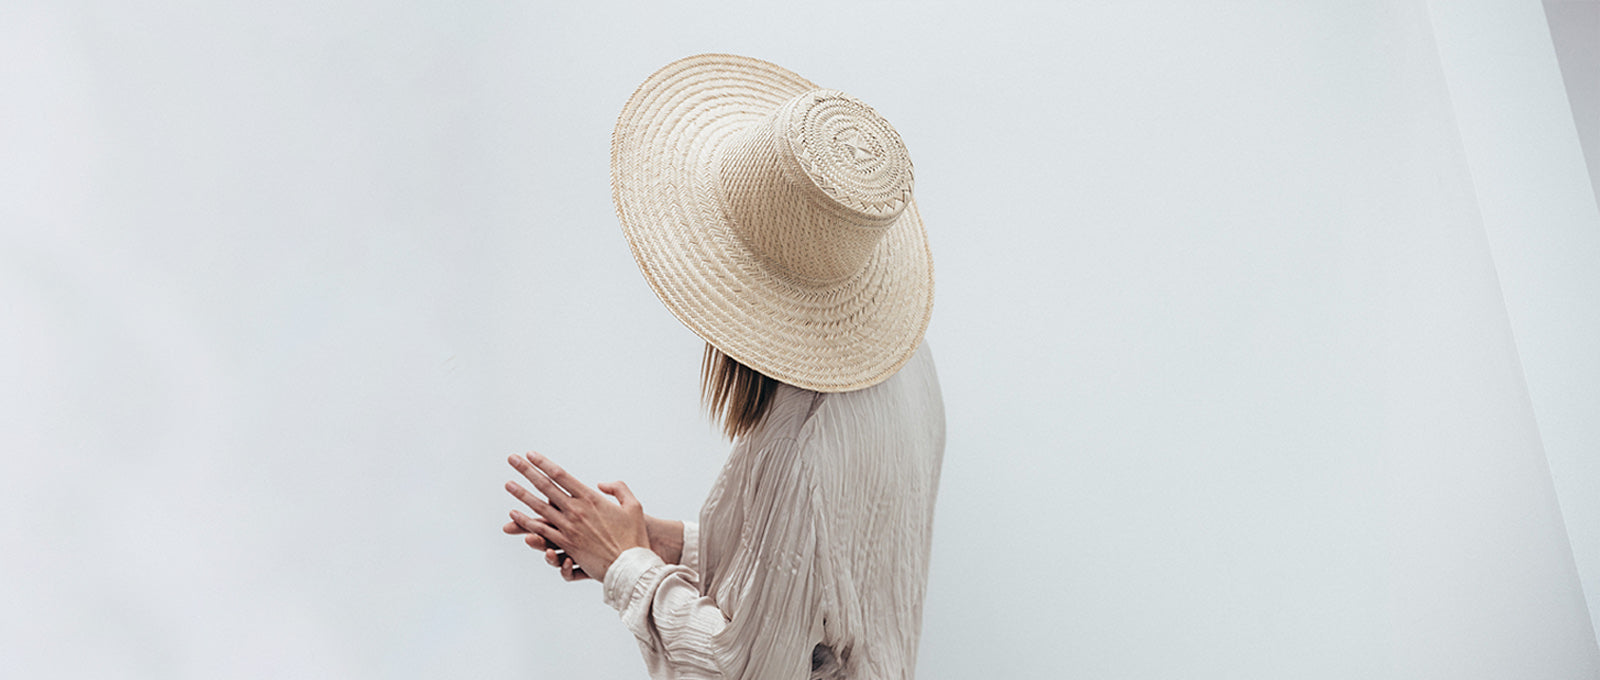 Janessa Leone Summer Women's Hats Summer Spring Hats made for the beach and traveling | Wide brimmed straw hats ivory natural cream straw natural straw hat | Boater hats for women | Wide brimmed boater hat boater style womens hat | Sun protective hat with thick straw weave | Beach travel hat